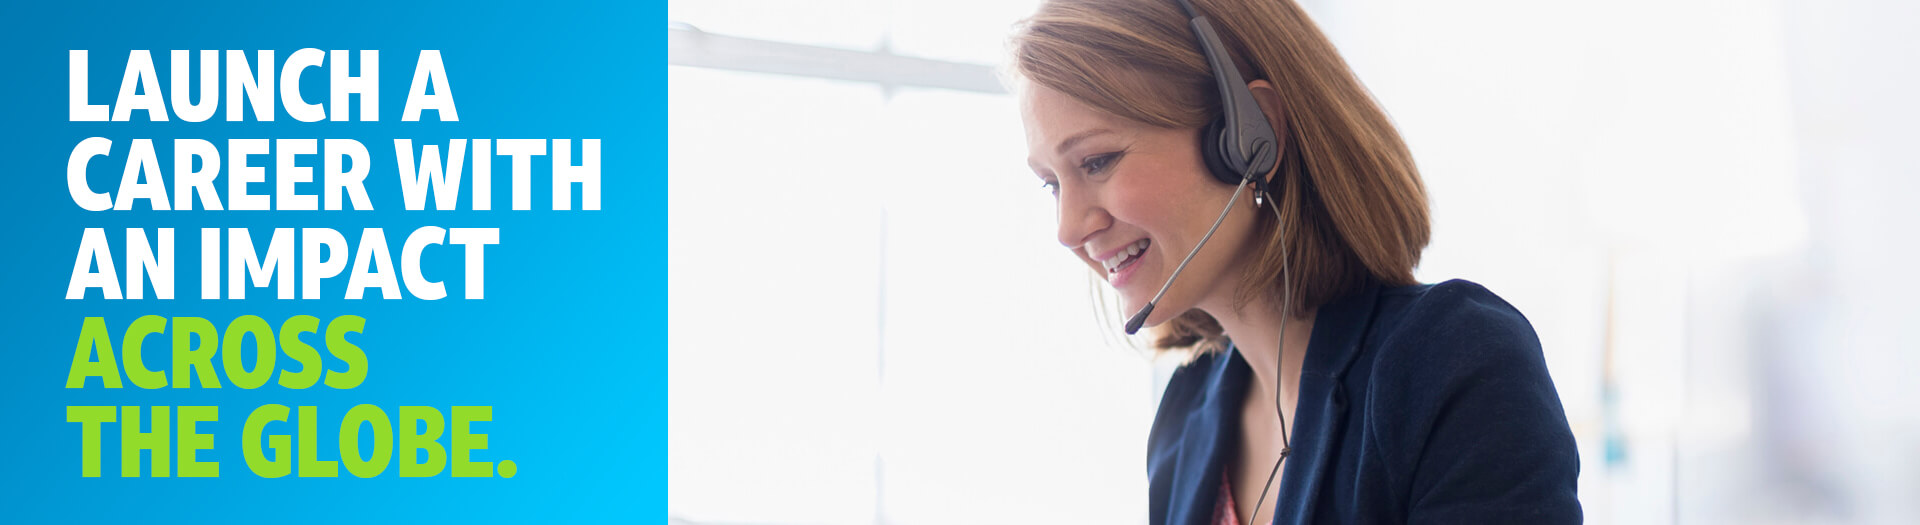 Launch a career with an impact across the globe. Image: Female in suit wearing headset.